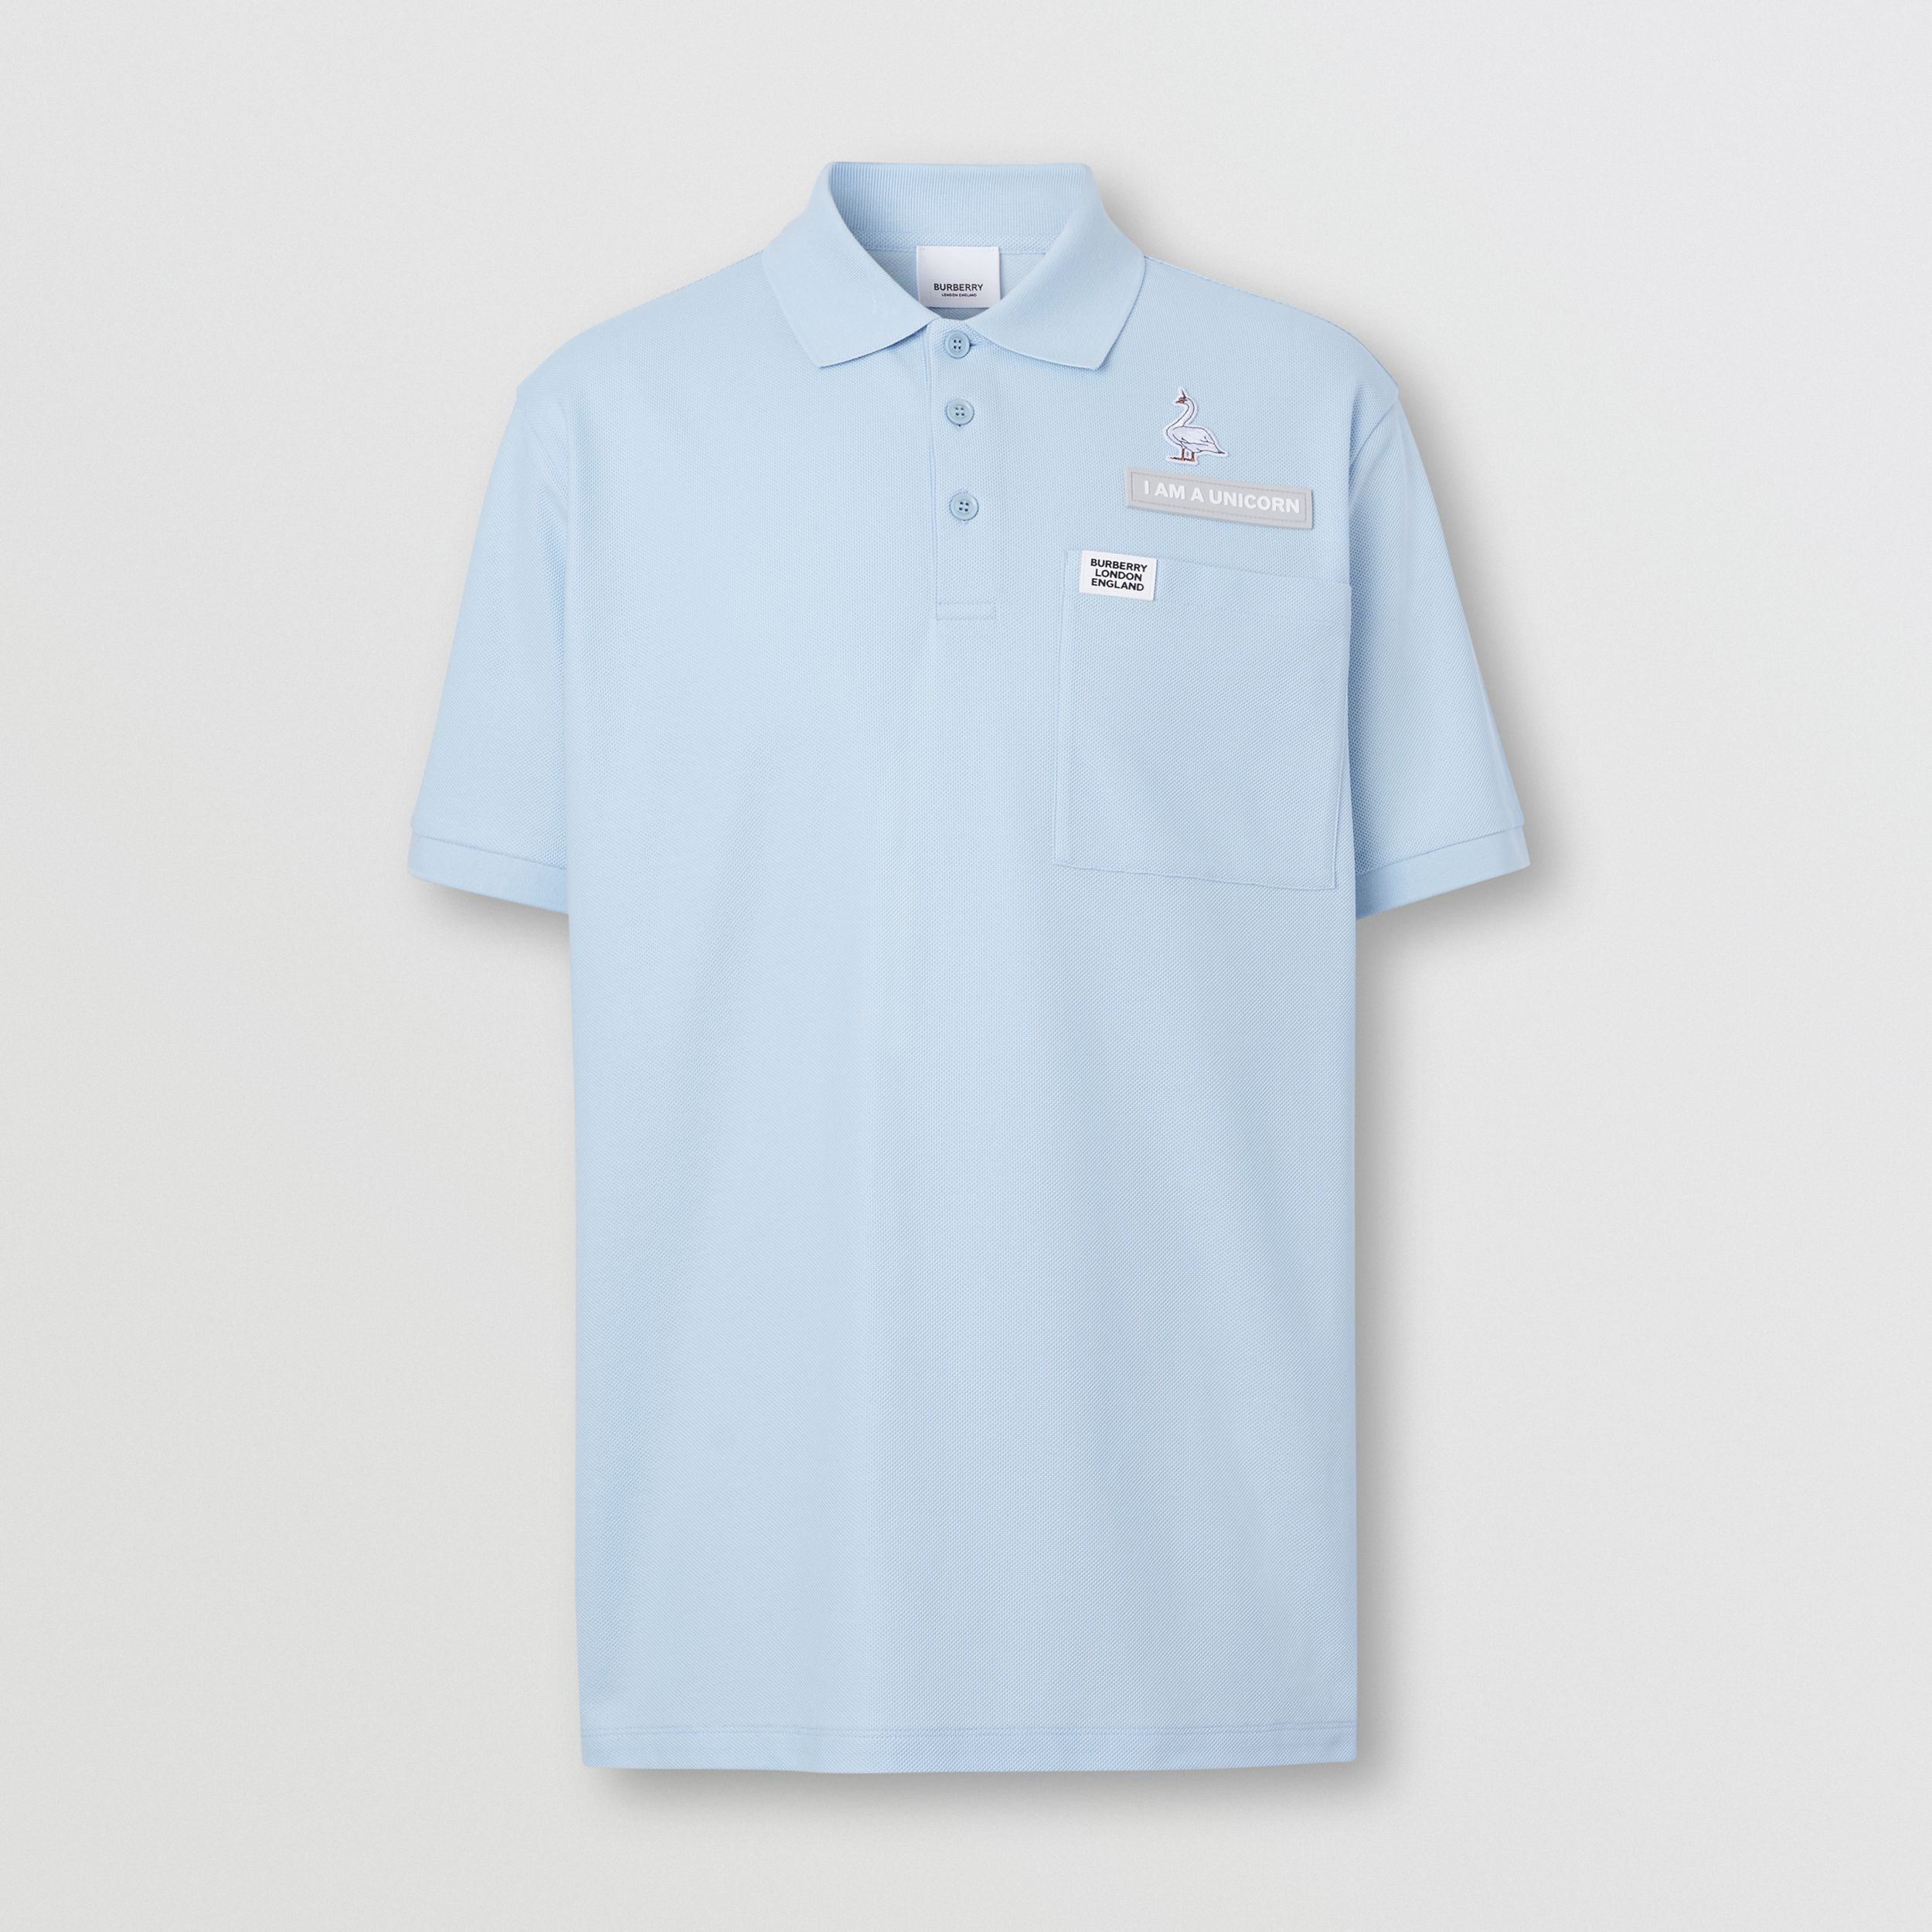 Swan and Slogan Appliqué Cotton Polo Shirt in Pale Blue - Men | Burberry - 4